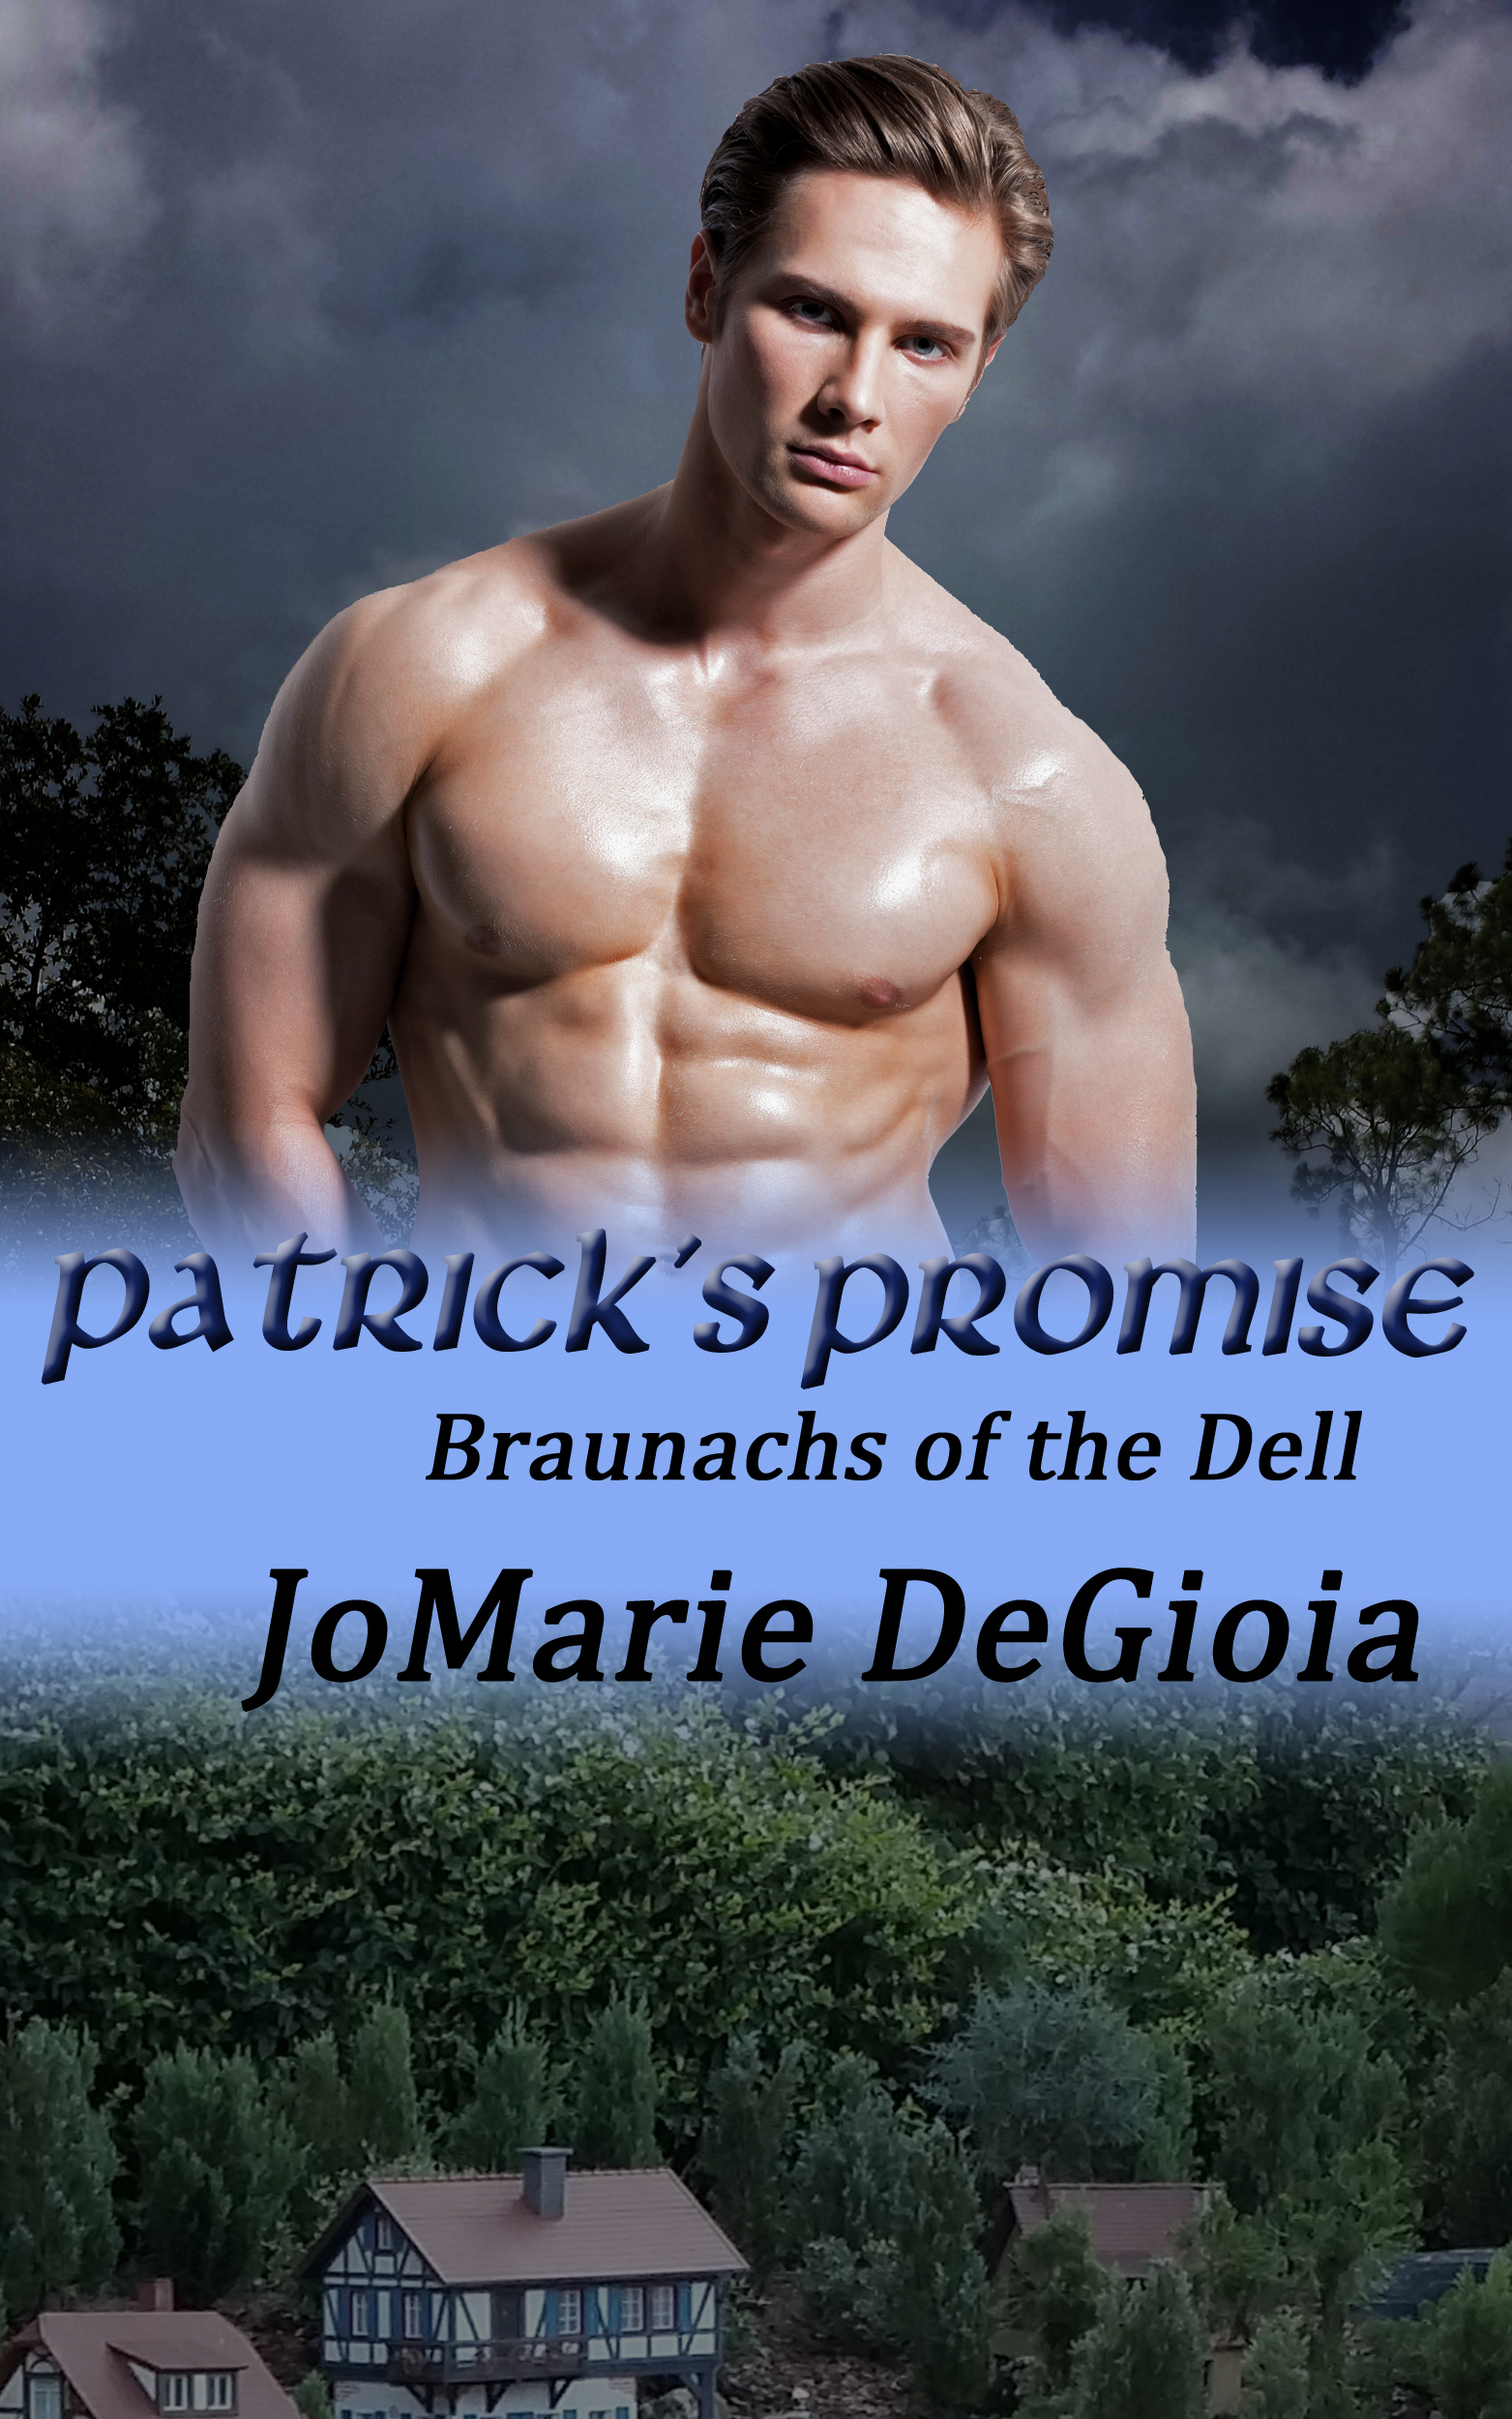 Patricks Promise (Braunachs of the Dell 2)  by  JoMarie DeGioia